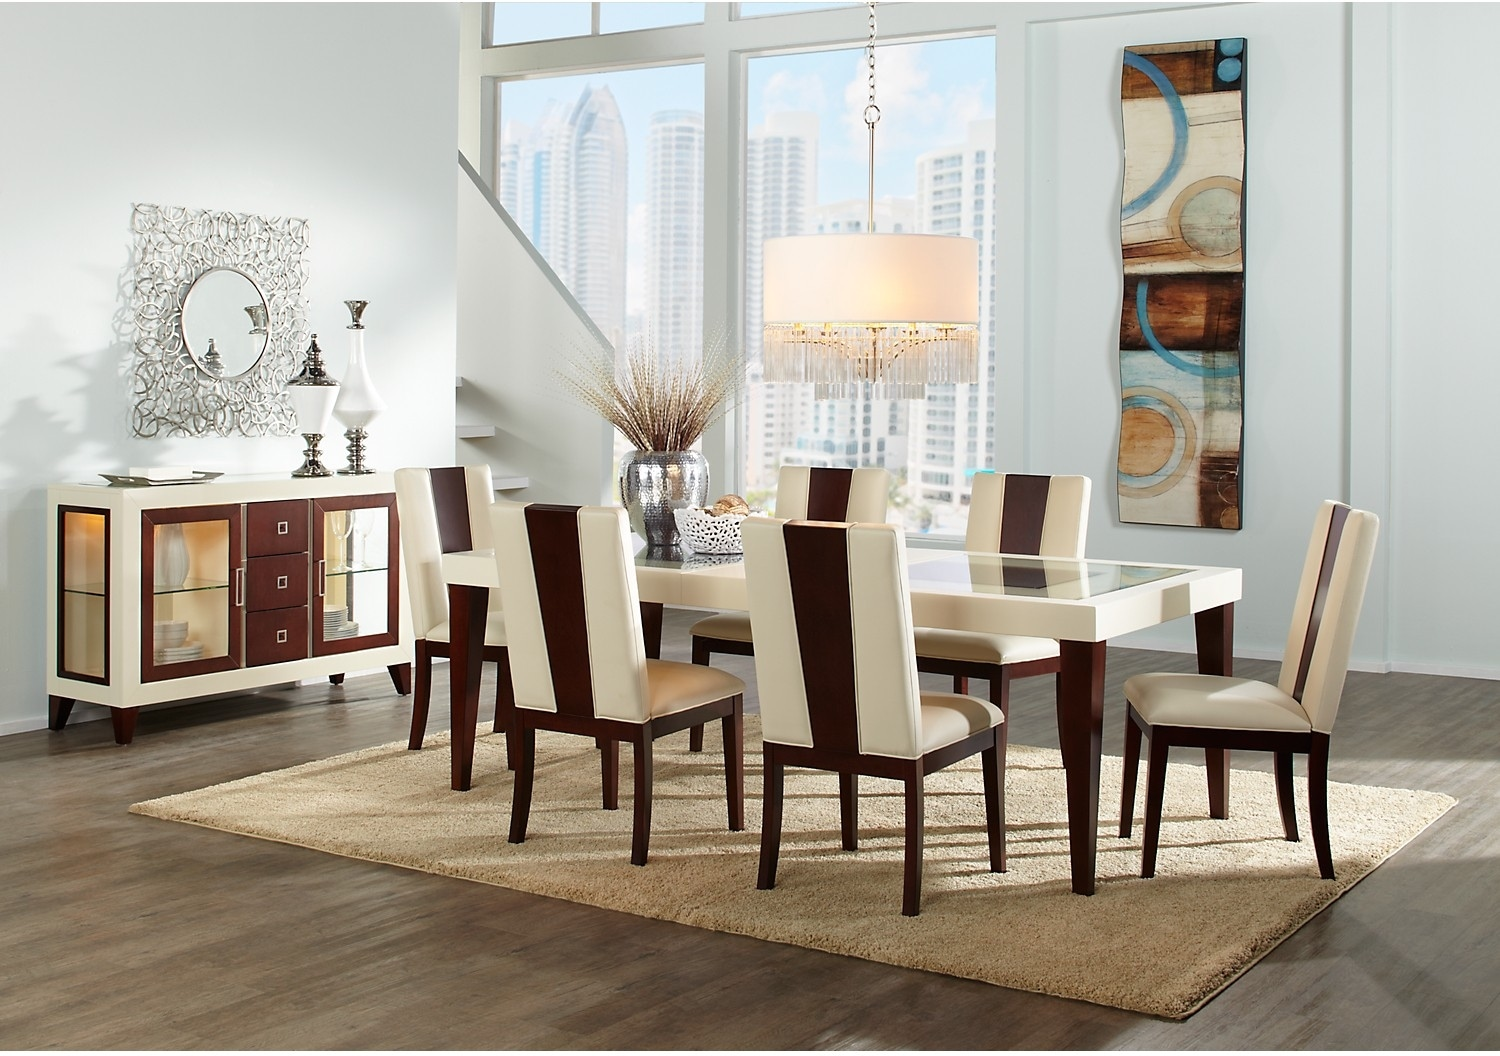 The Brick Dining Room Furniture Zeno 8 Piece Dining Package The Brick